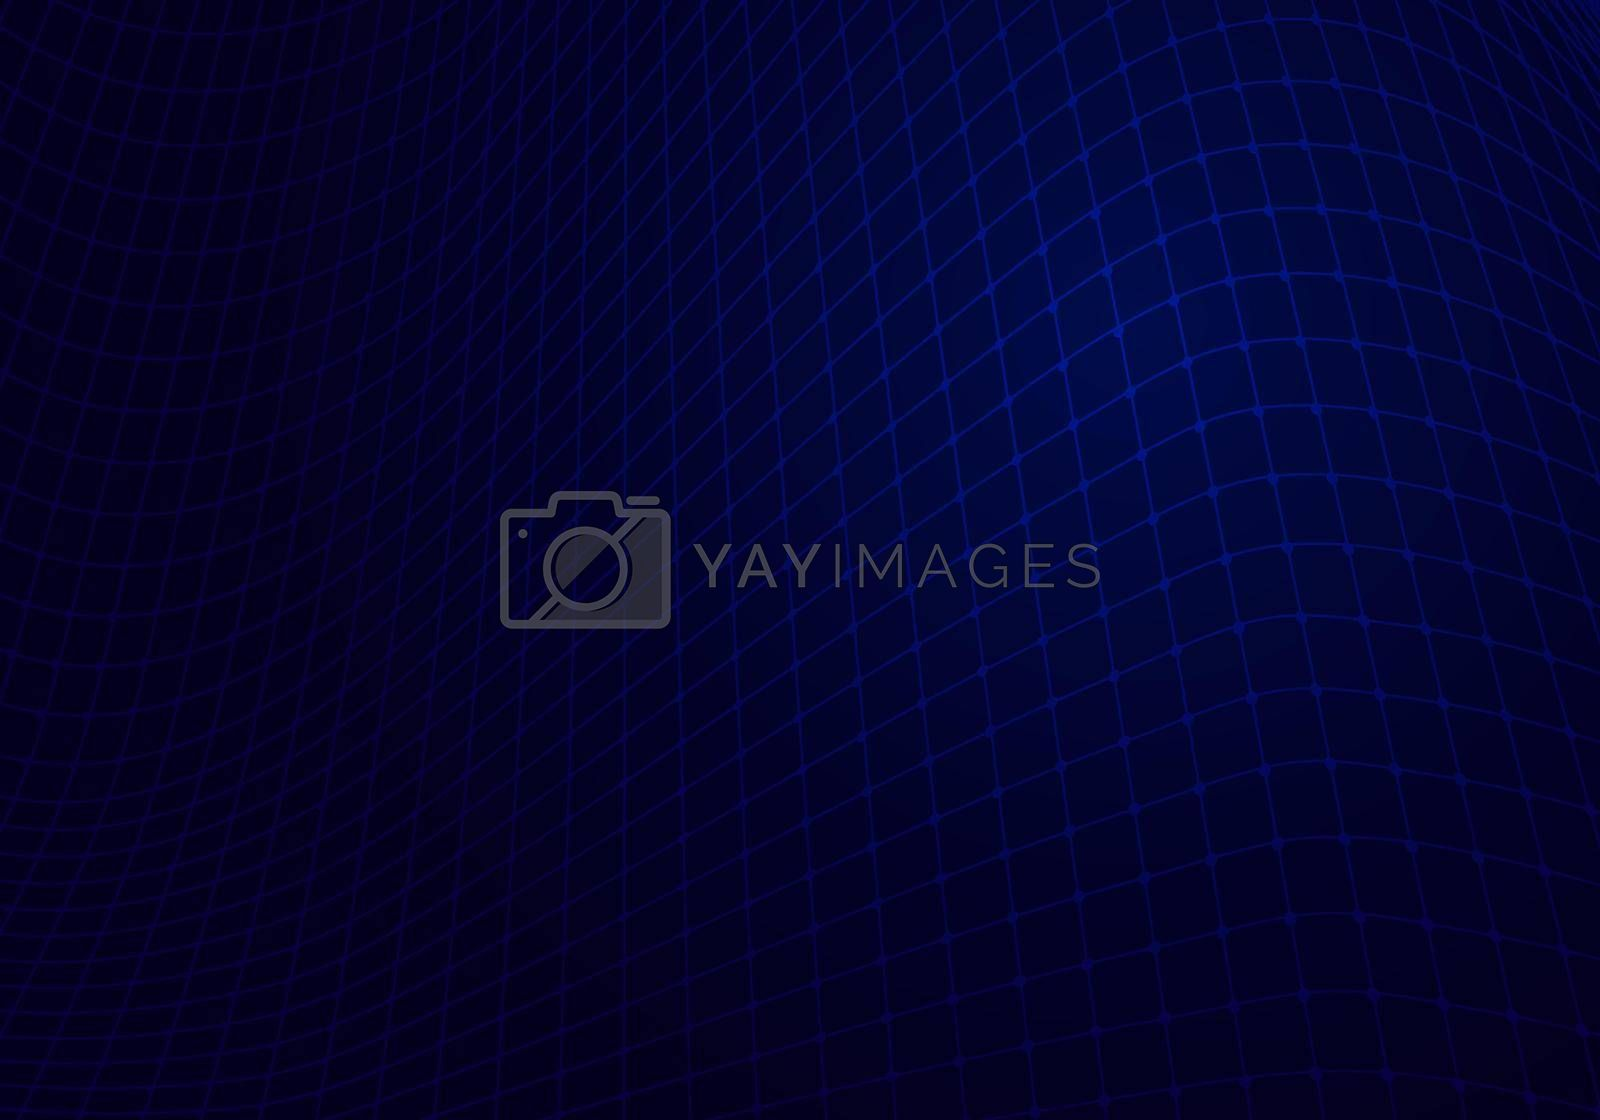 Royalty free image of Abstract blue mesh grid network on dark background technology digital concept by phochi